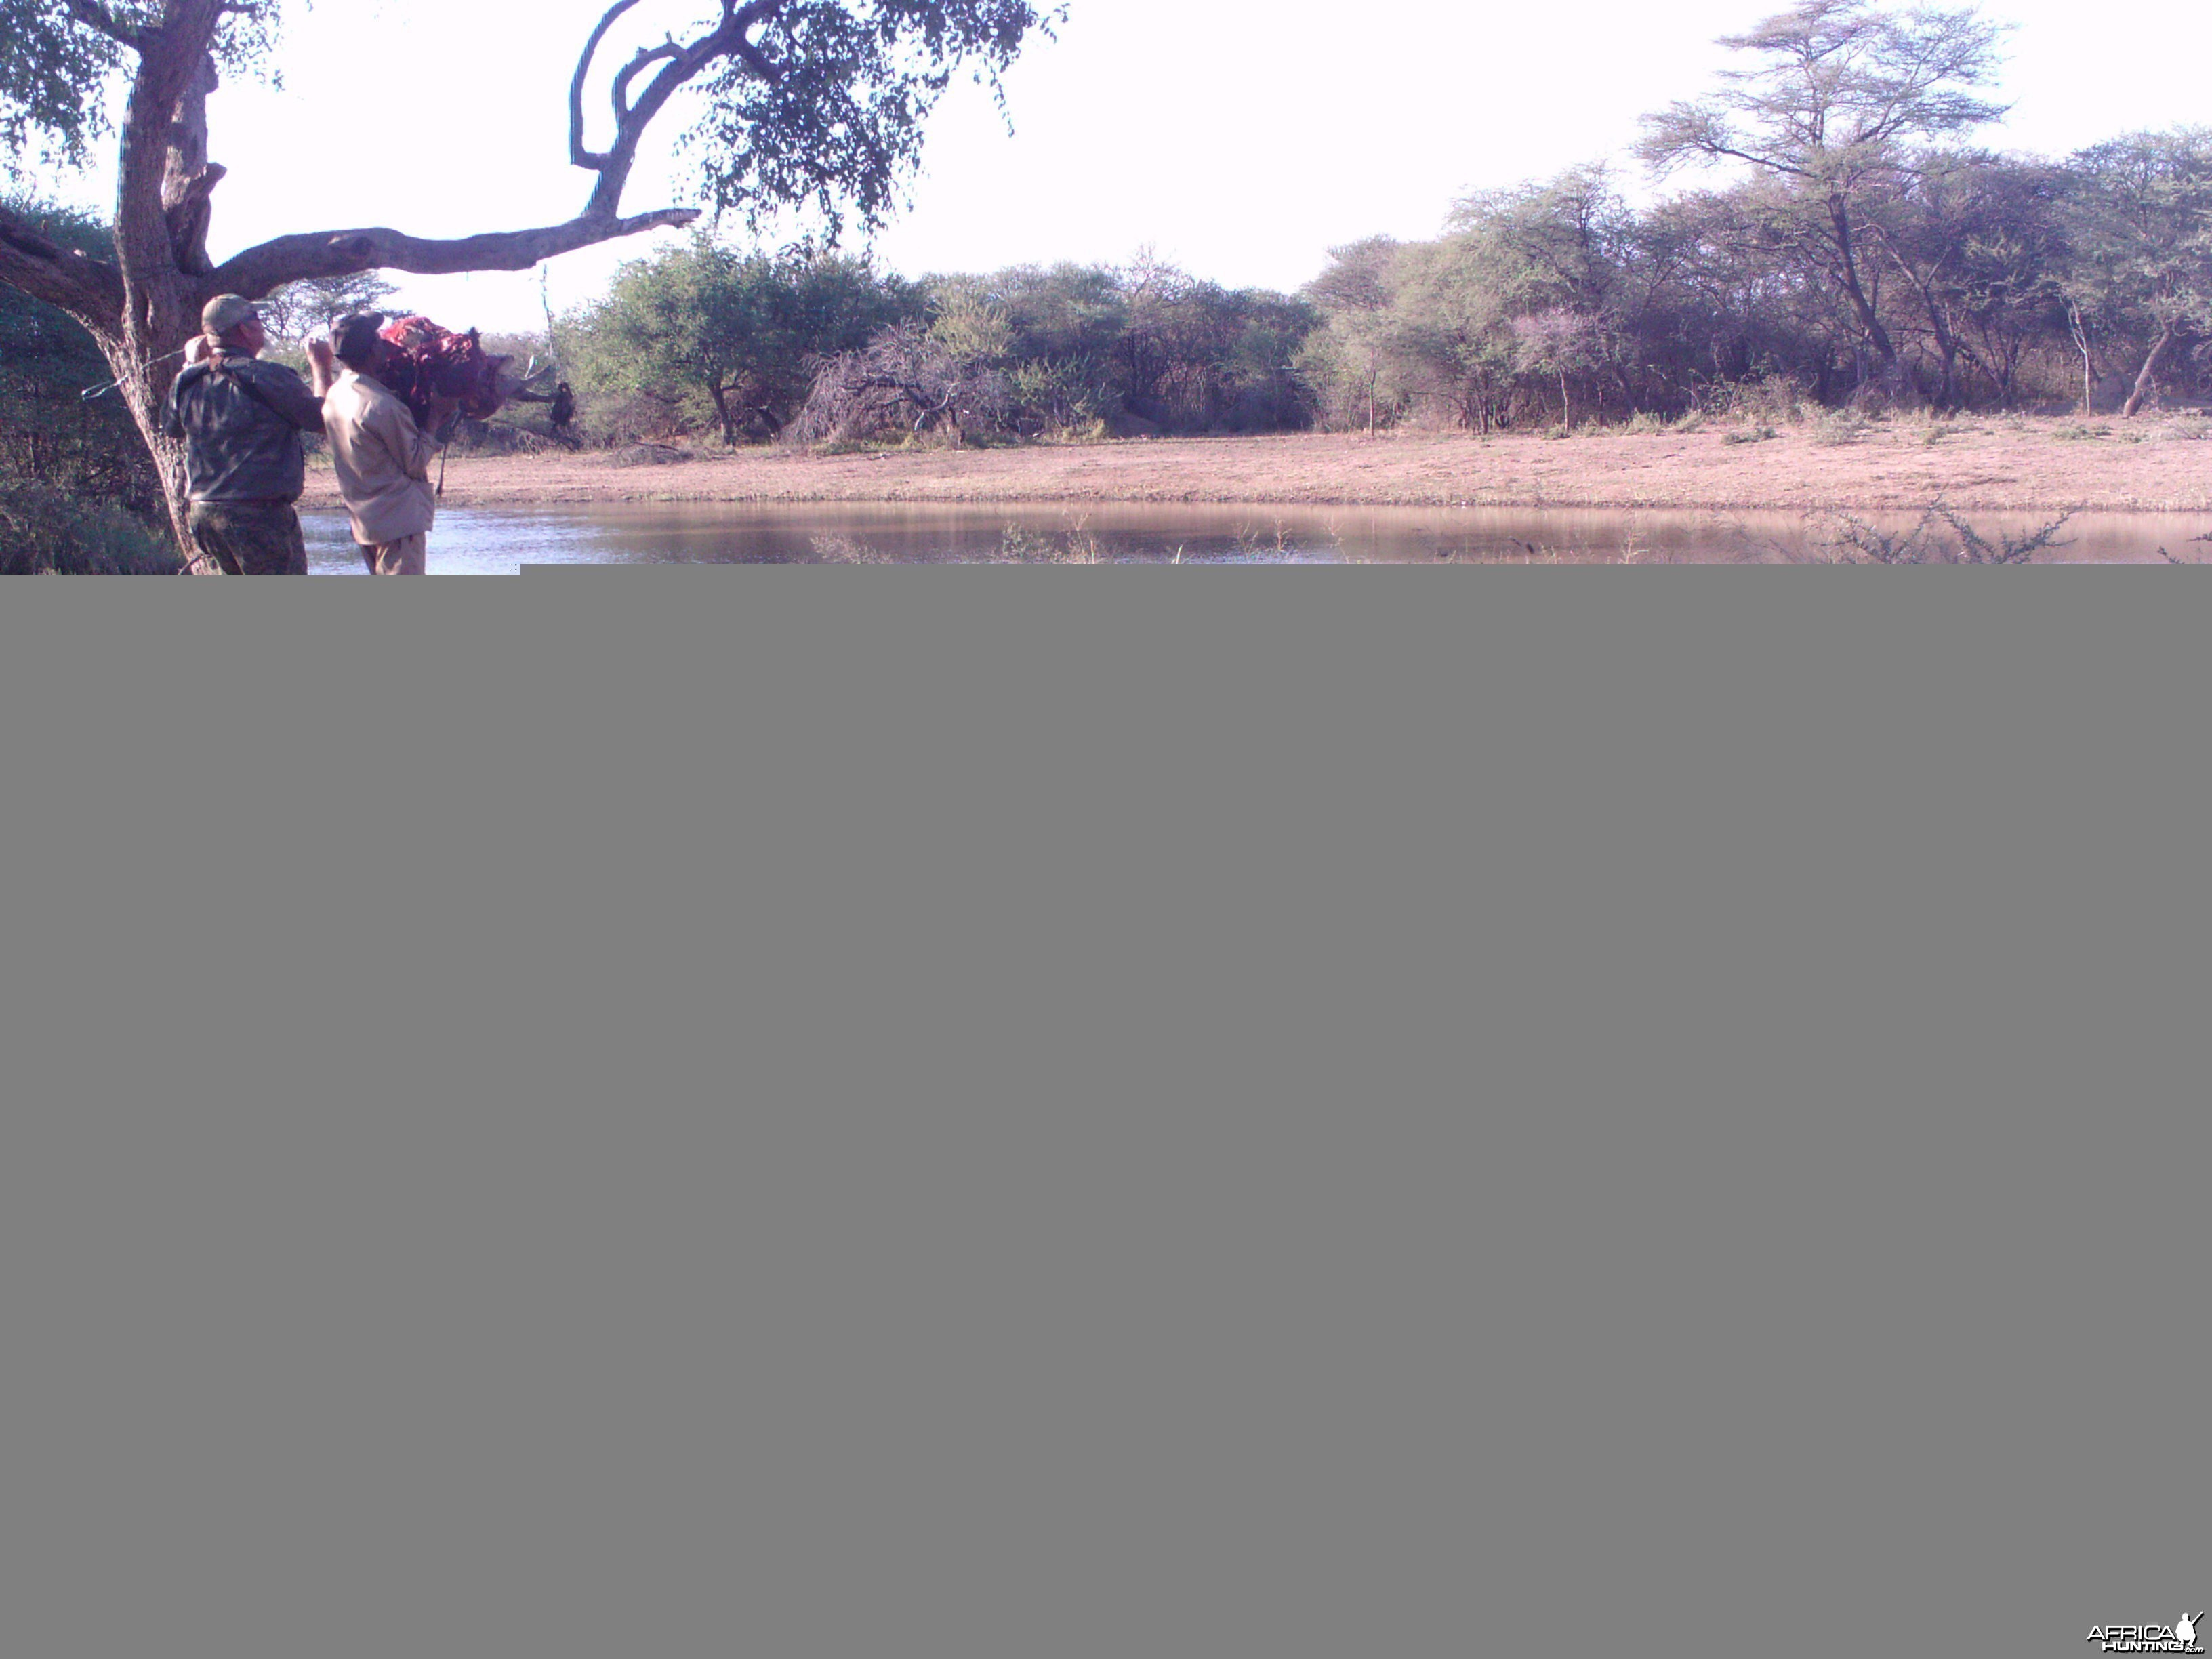 Checking Leopard Bait Trail Camera